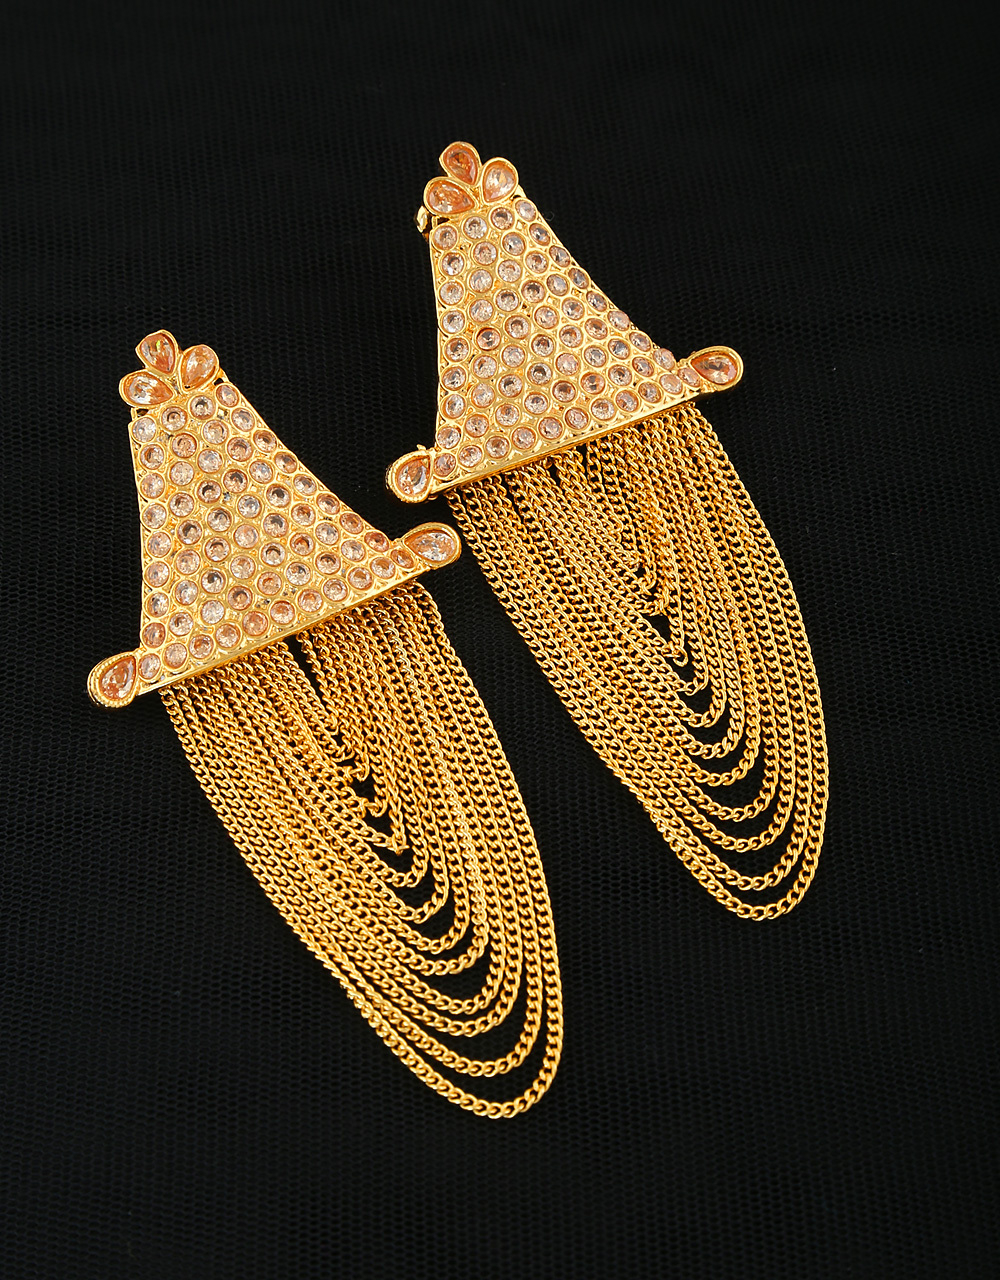 Gold Chain Earrings Design Foto Ring And Wallpaper